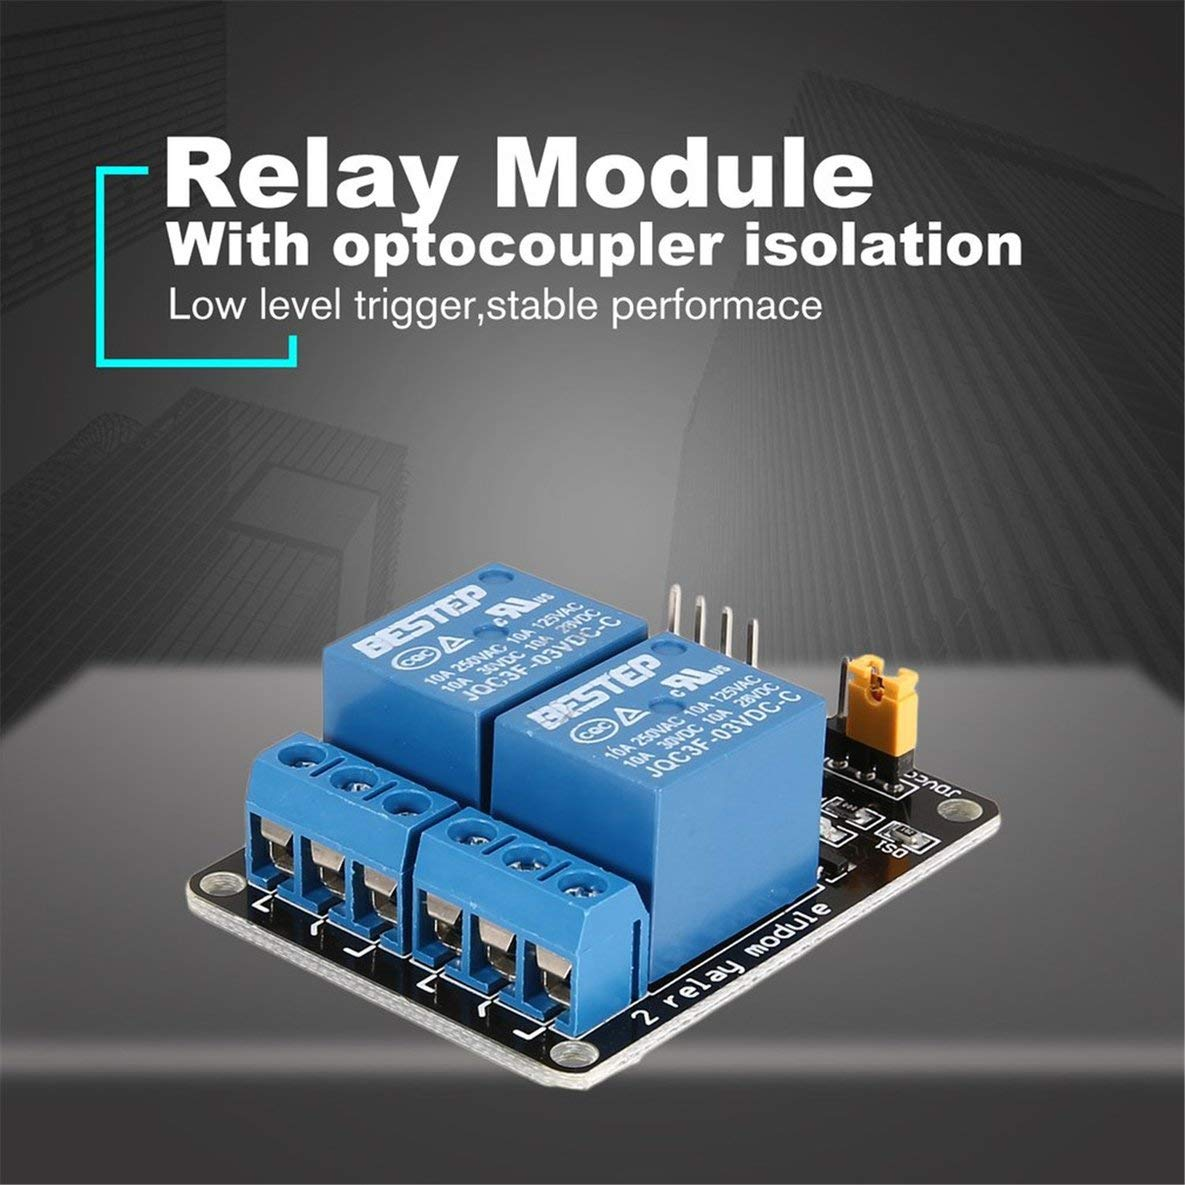 Noradtjcca 3V 2 Channel Relay Module Interface Board Low Level Trigger Optocoupler for Arduino SCM PLC Smart Home Remote Control Switch